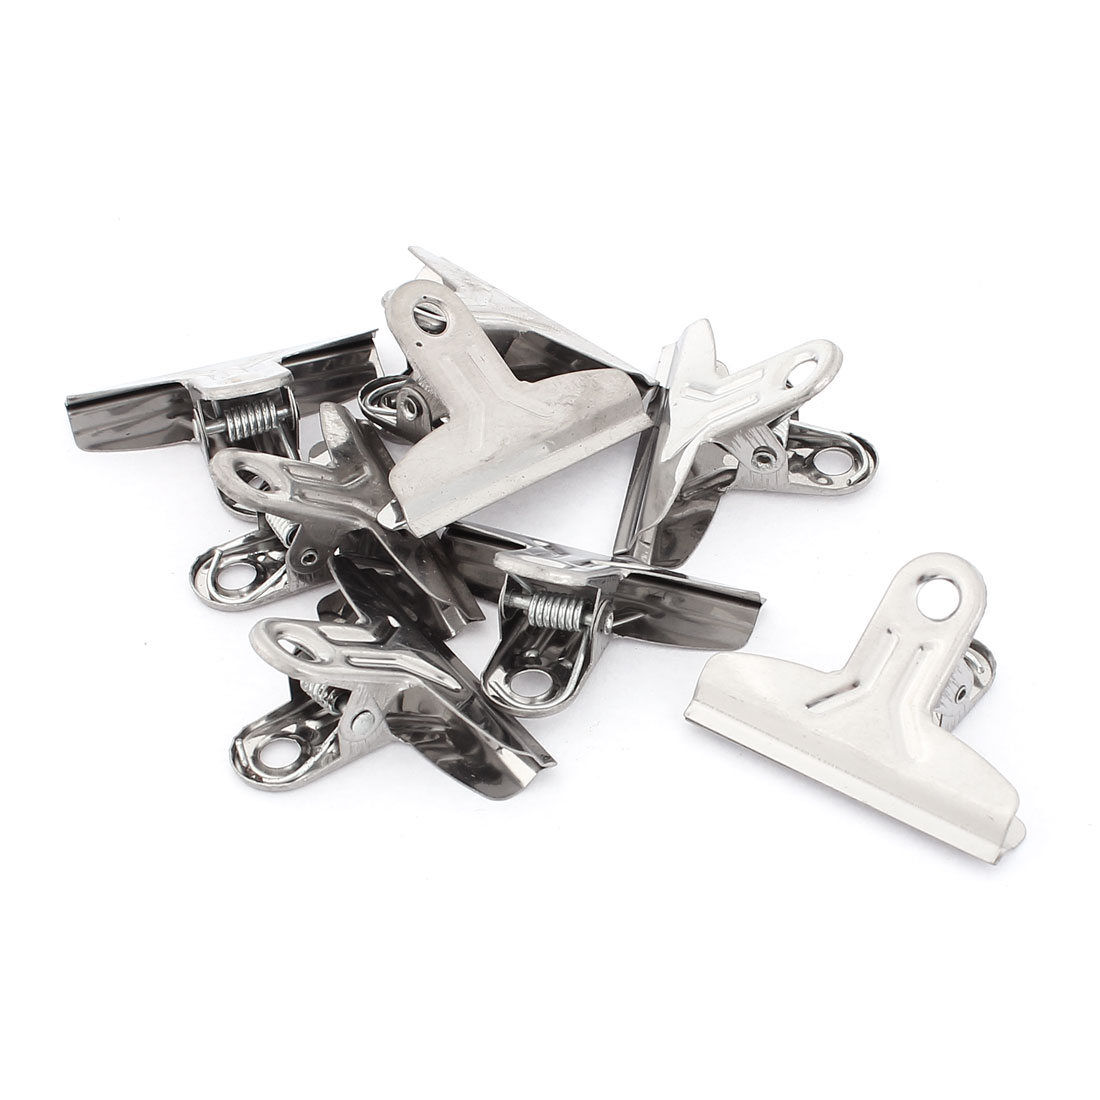 "School Office Stainless Steel File Paper Ticket Binder Clips Clamp 2"" 8pcs"